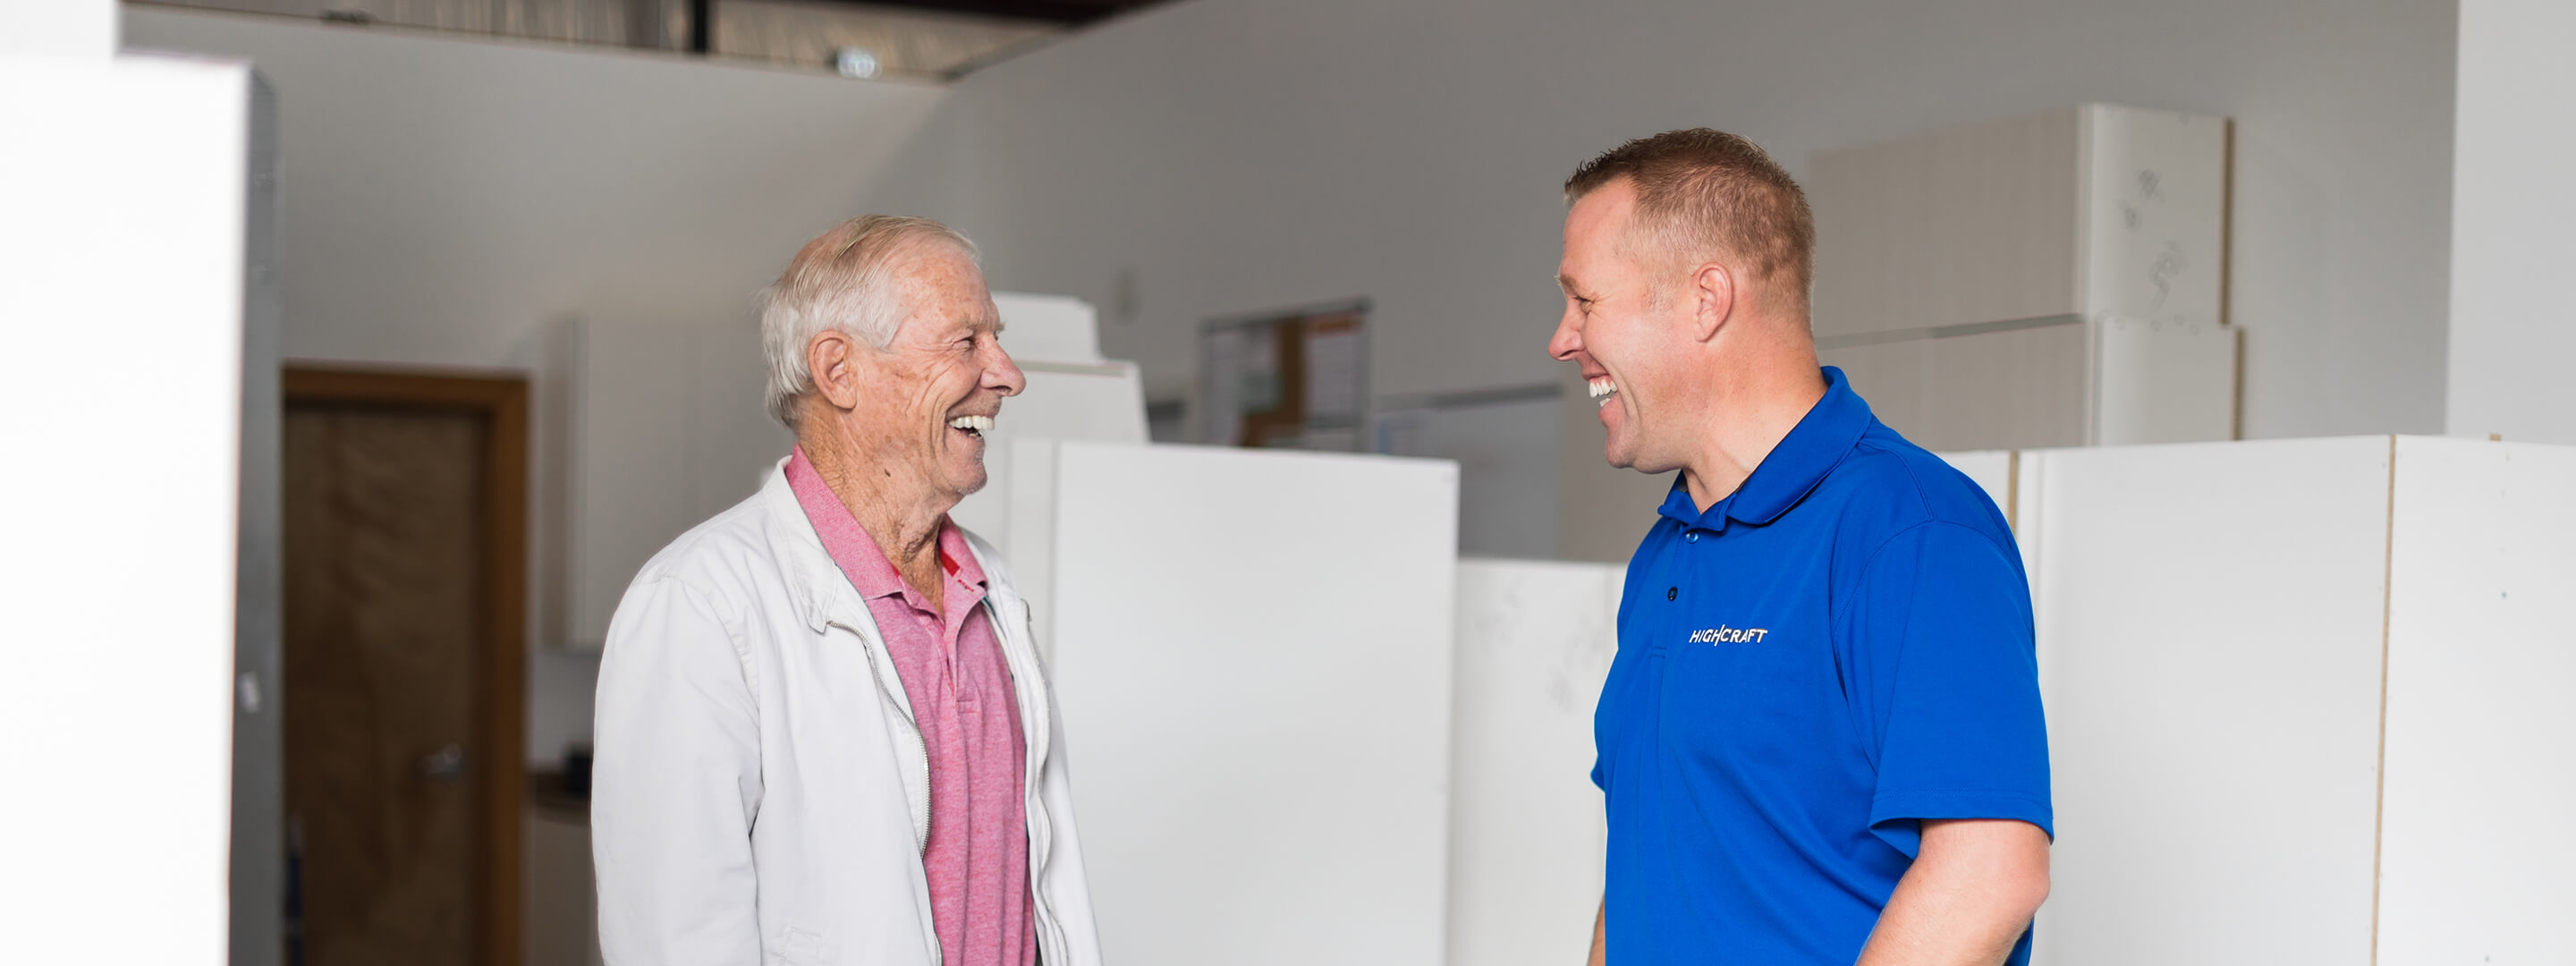 Two men in red and blue shirts smile while talking in a cabinet manufacturing factory.